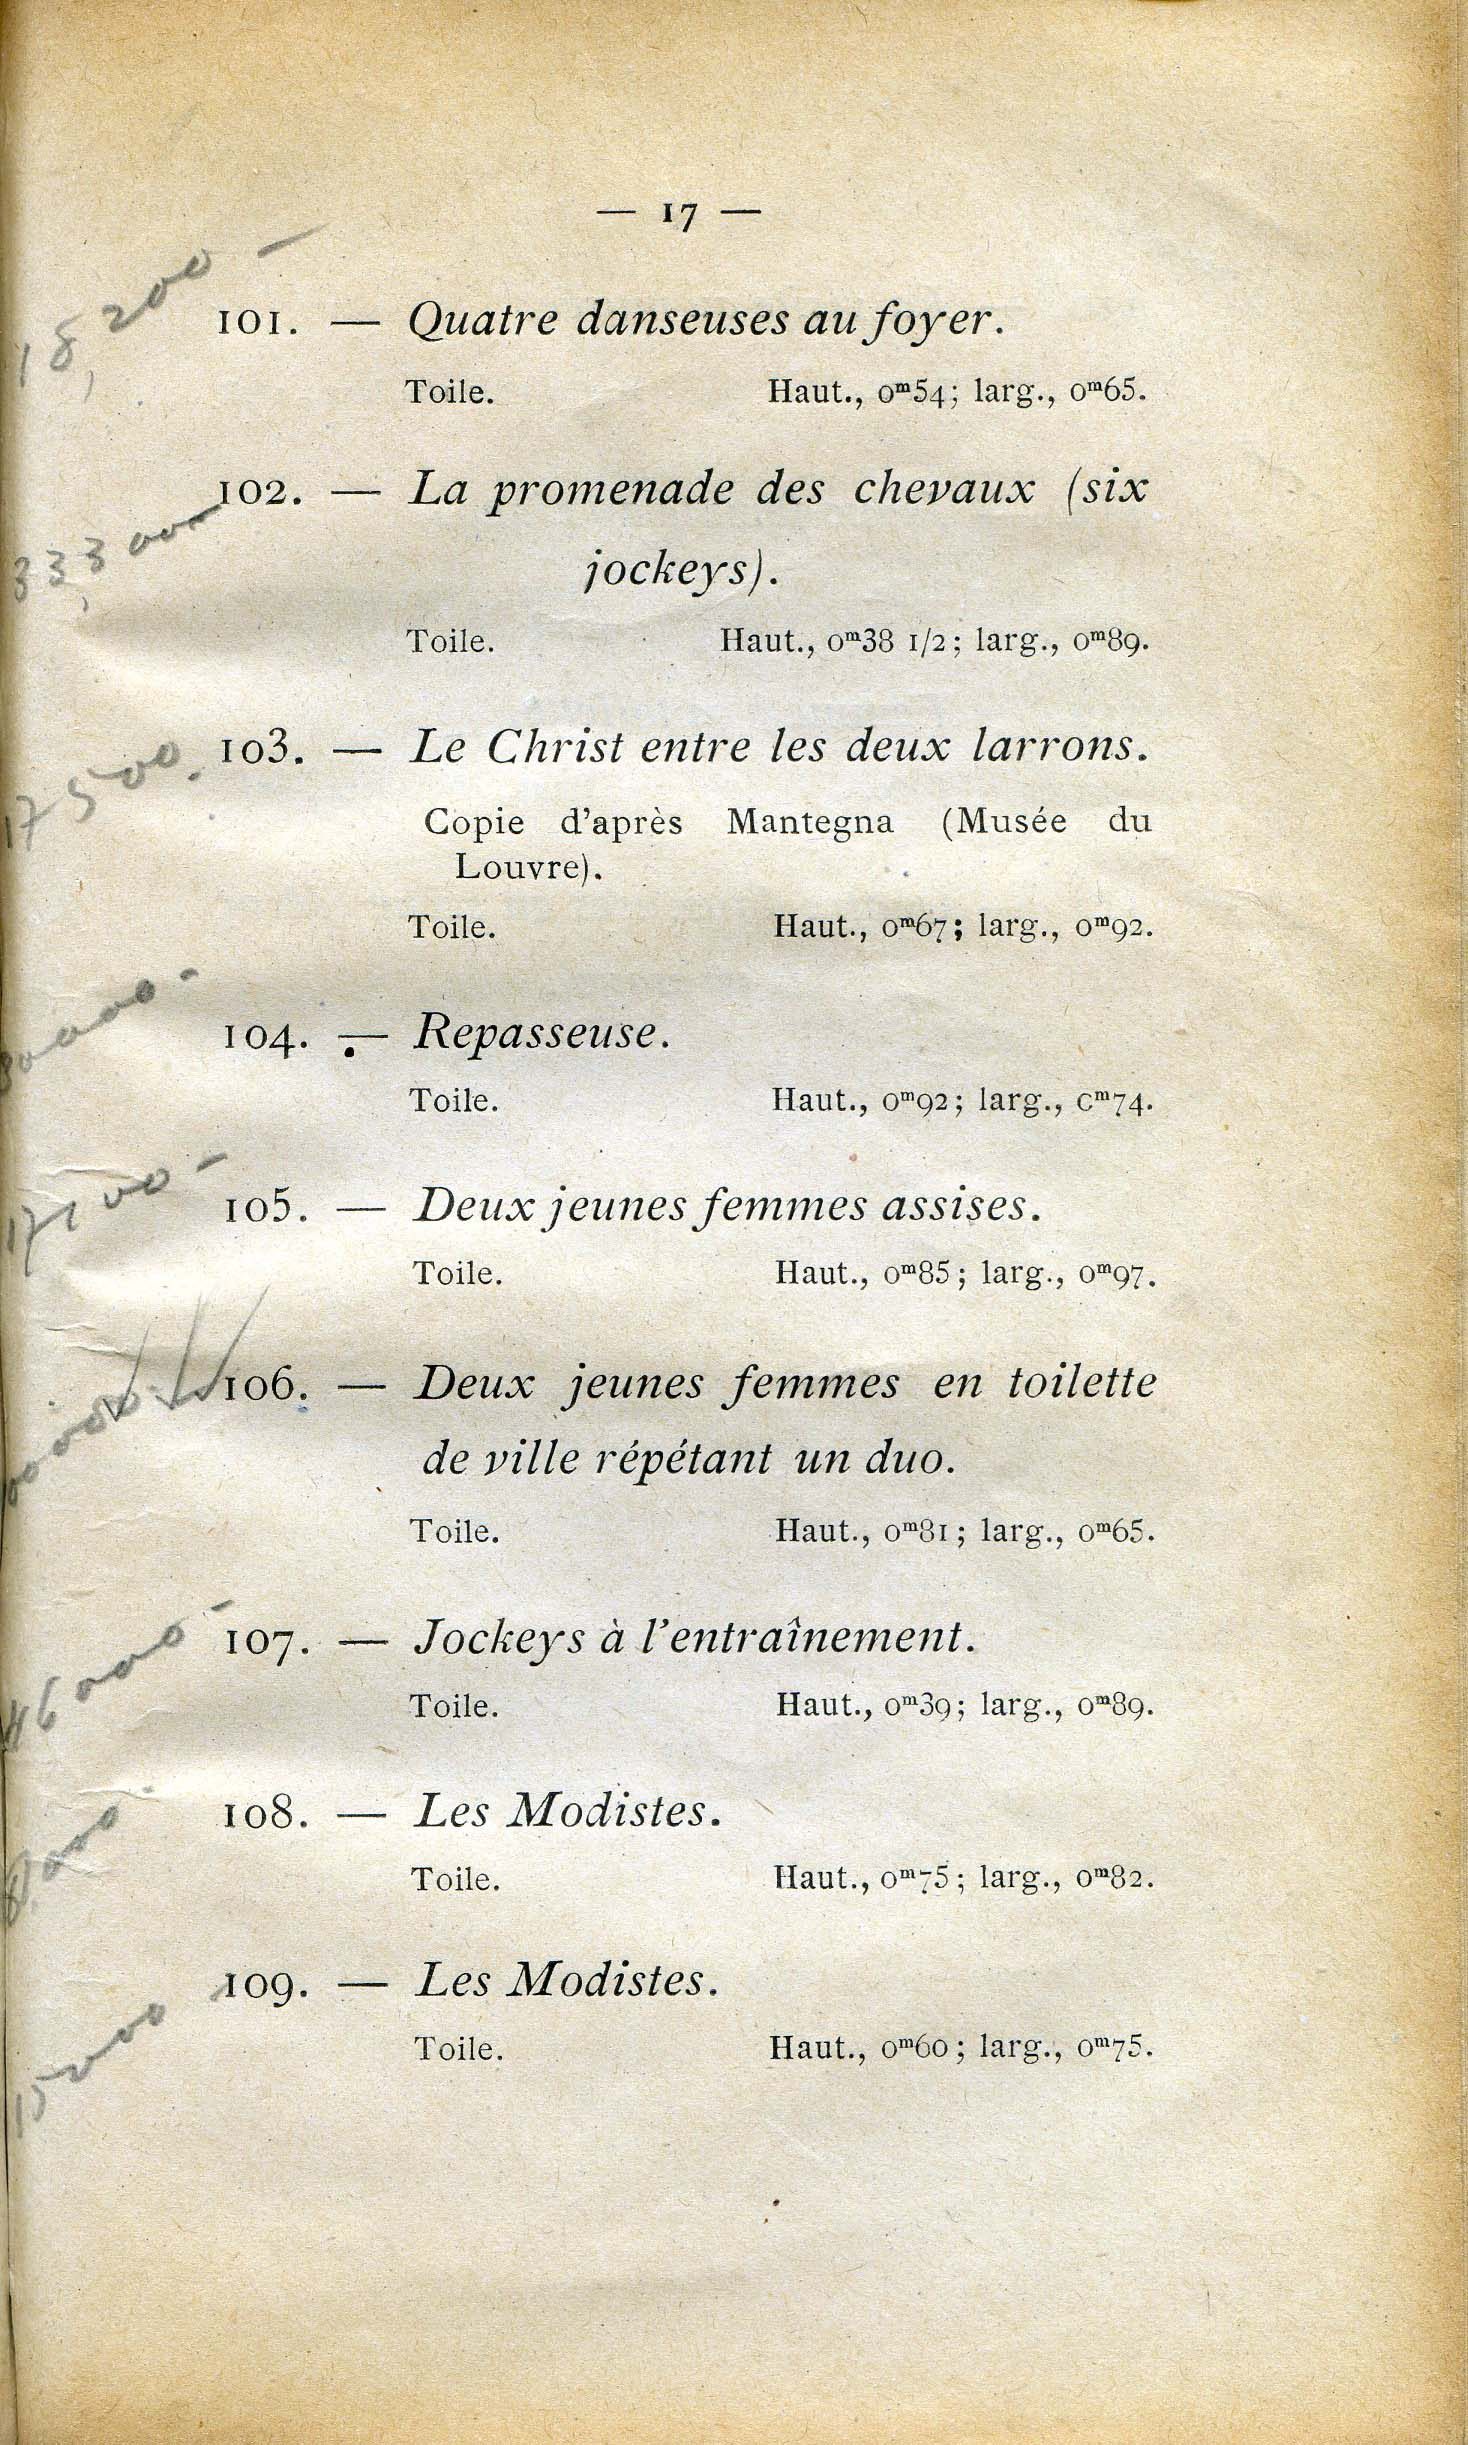 Annotated catalogue page with no. 106, The Song Rehearsal.